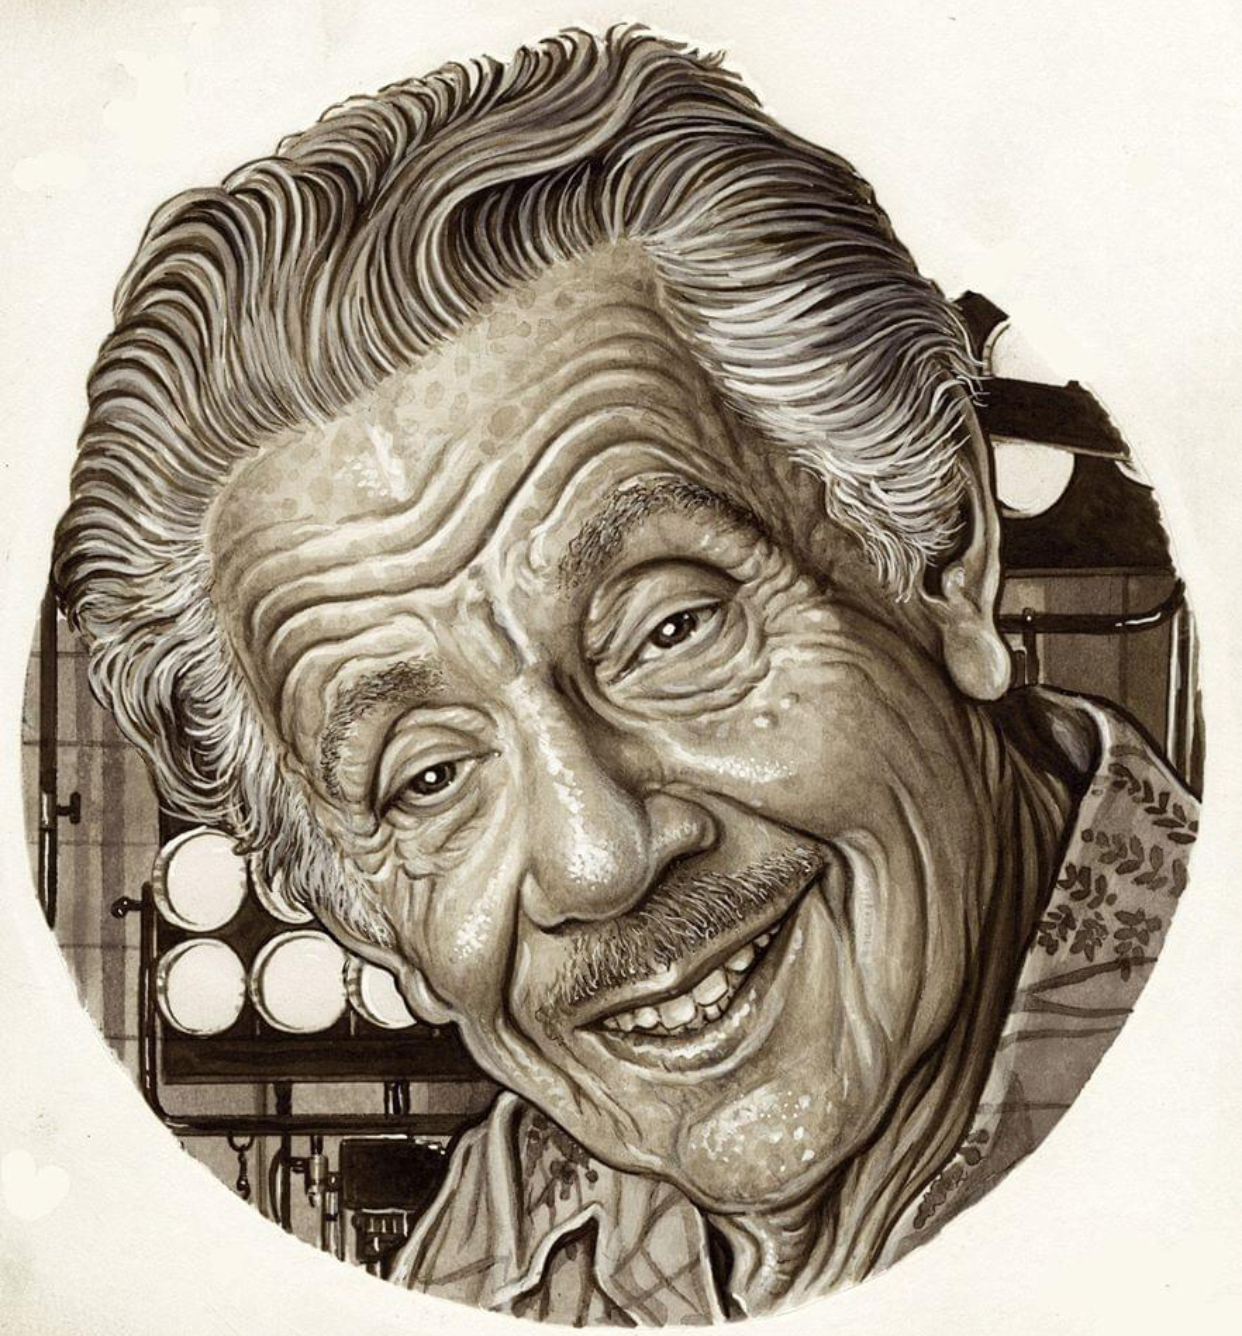 Caption: Jerry Stiller, Credit: Drew Friedman